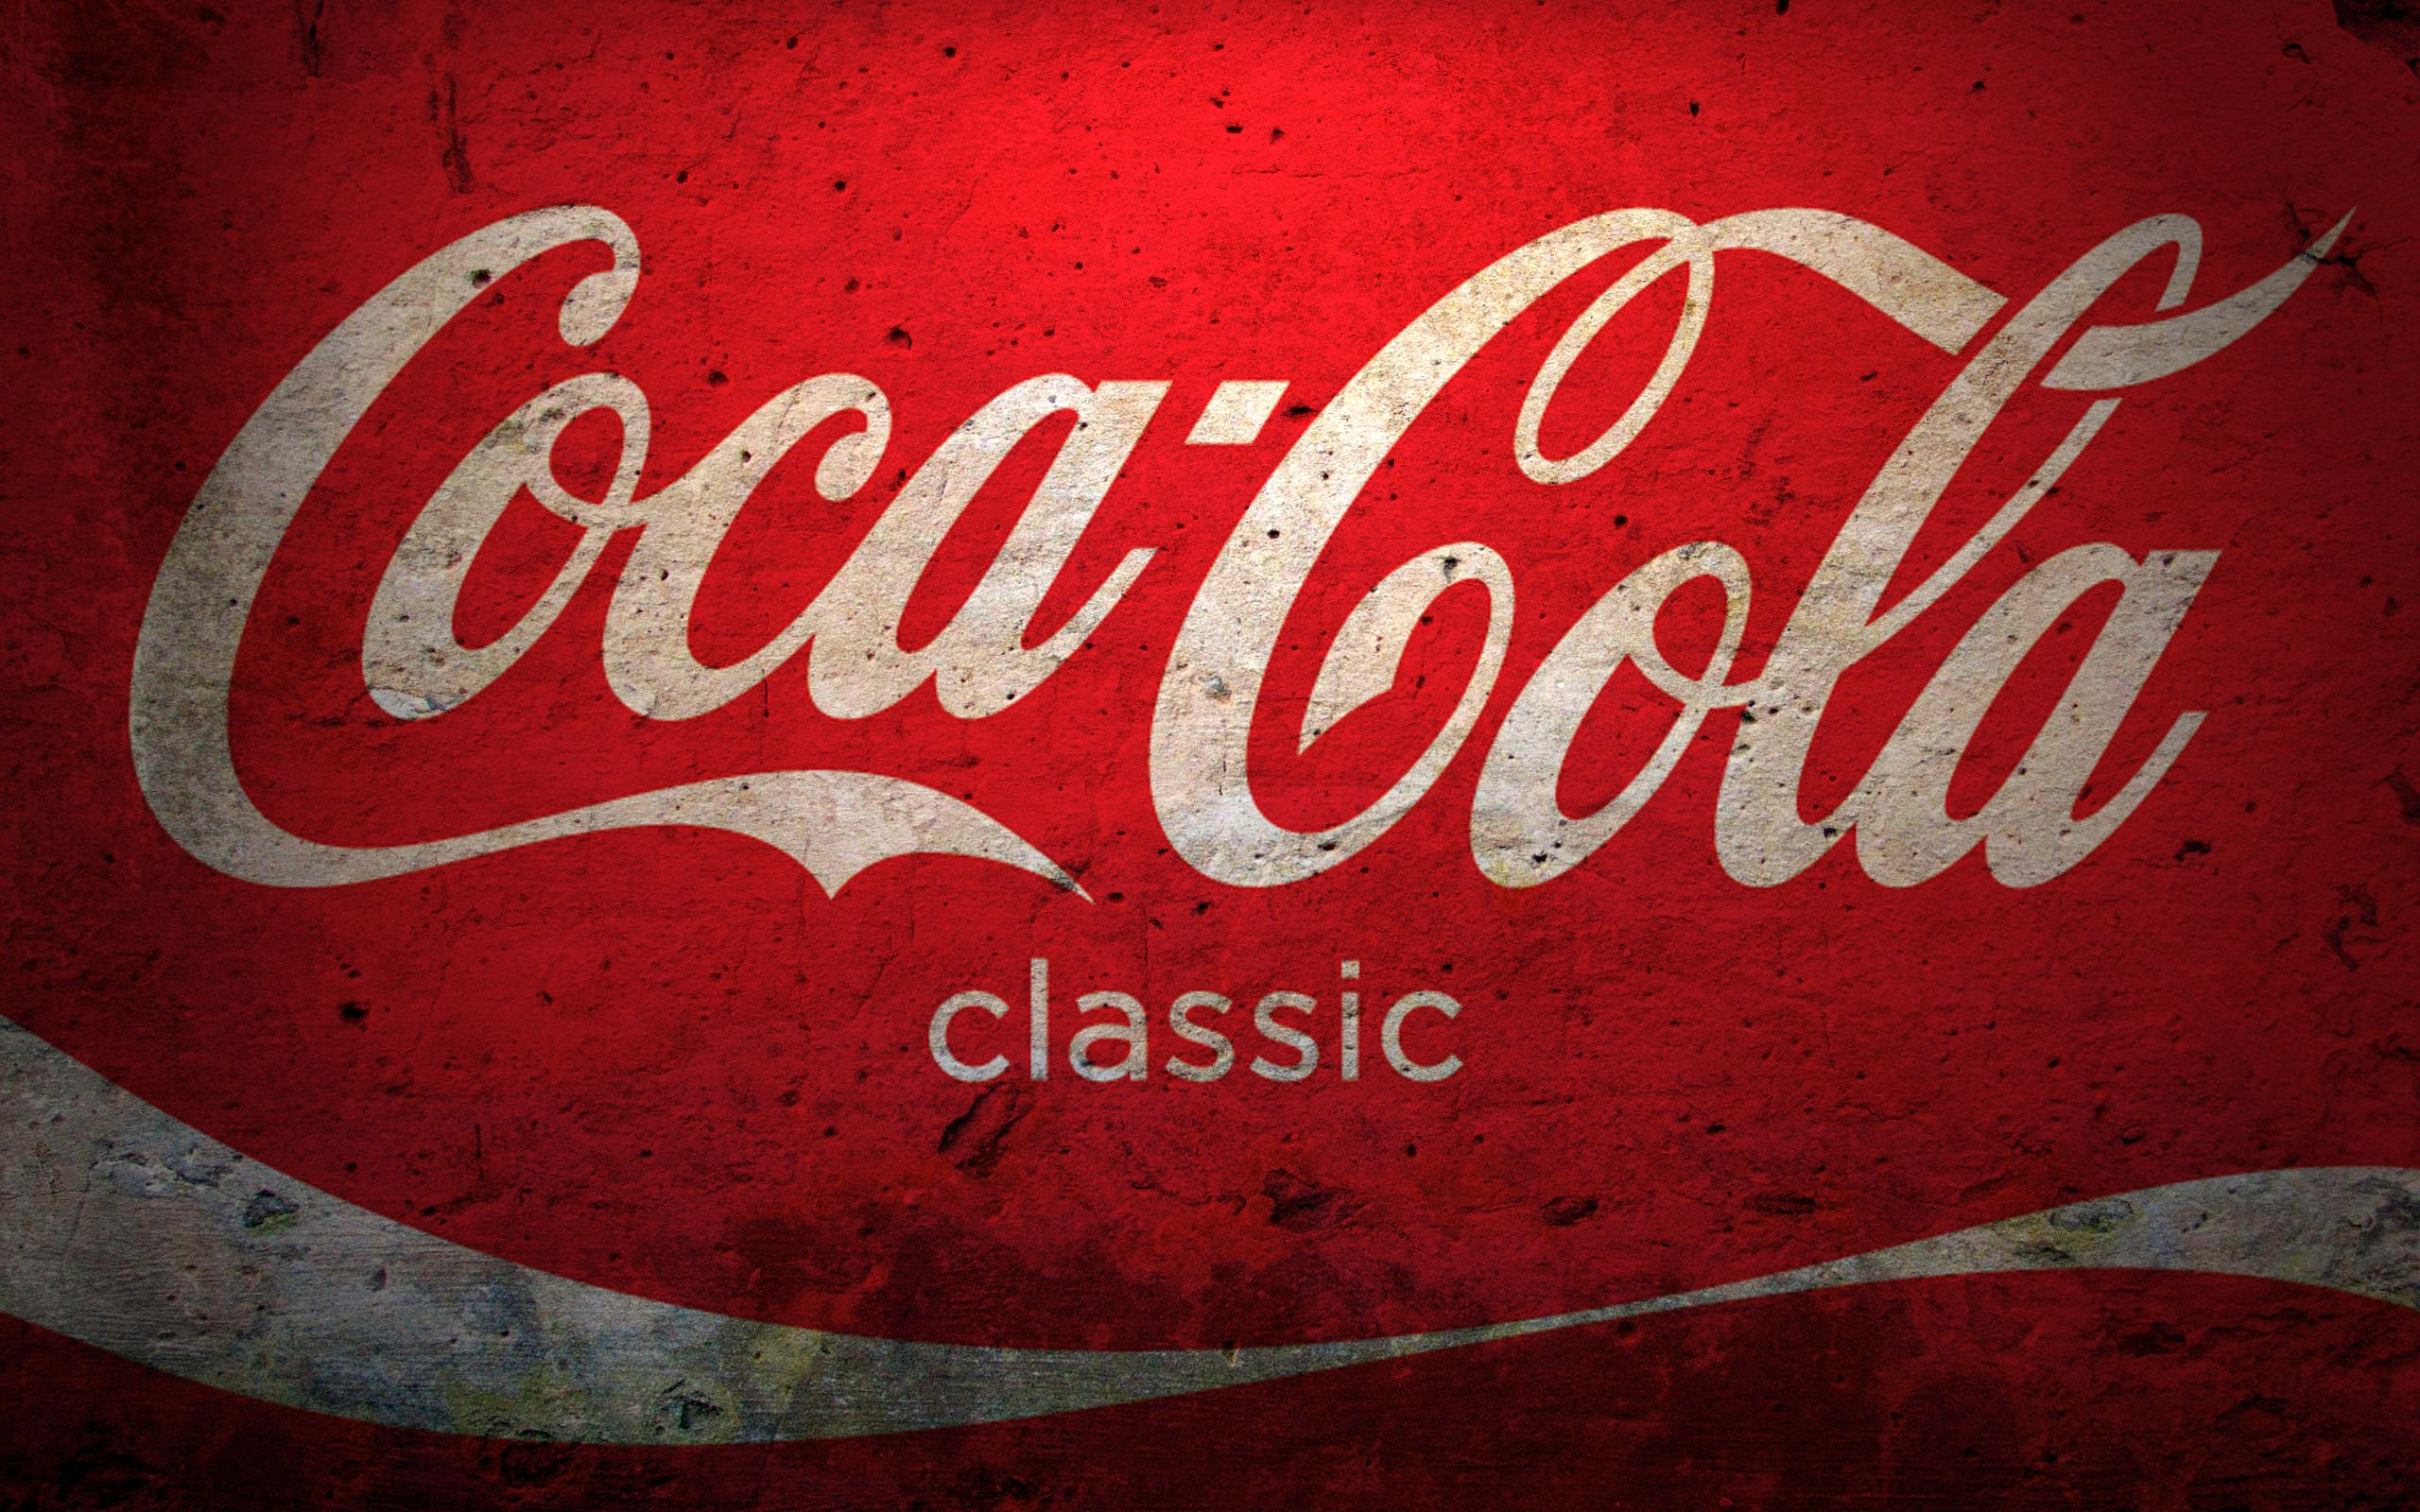 Classic Vintage Wallpaper: Coca-cola Full HD Wallpaper And Background Image